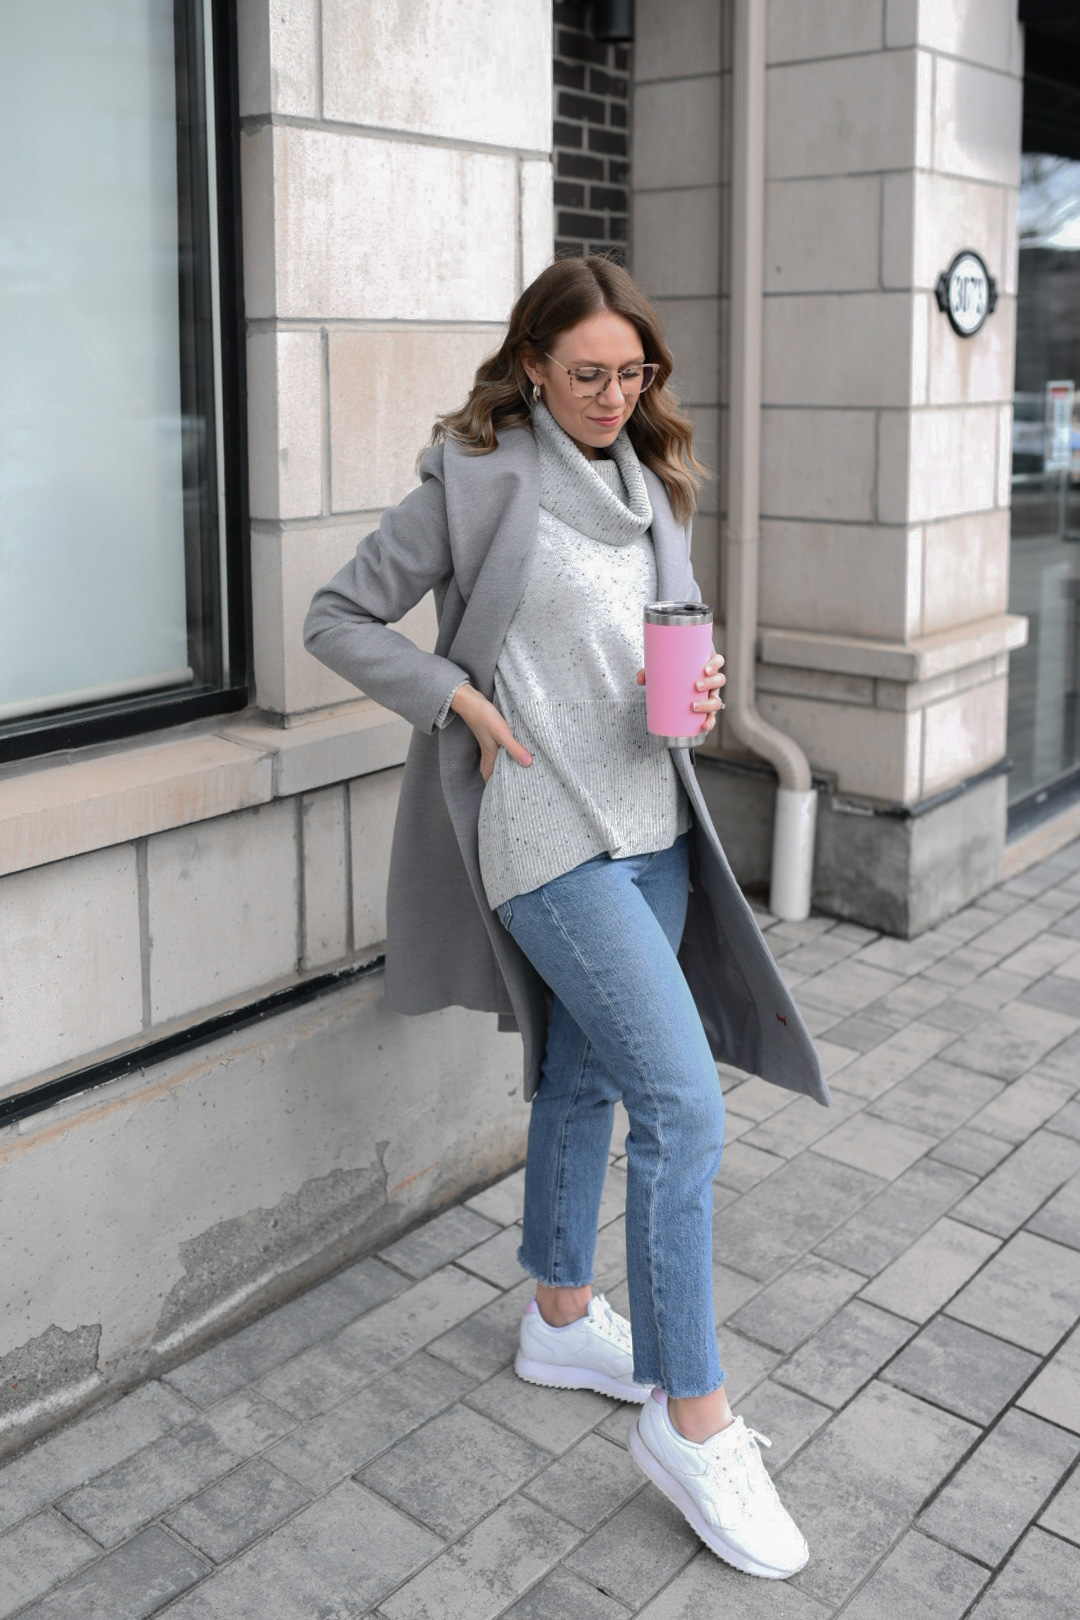 four big benefits of creating outfit formulas